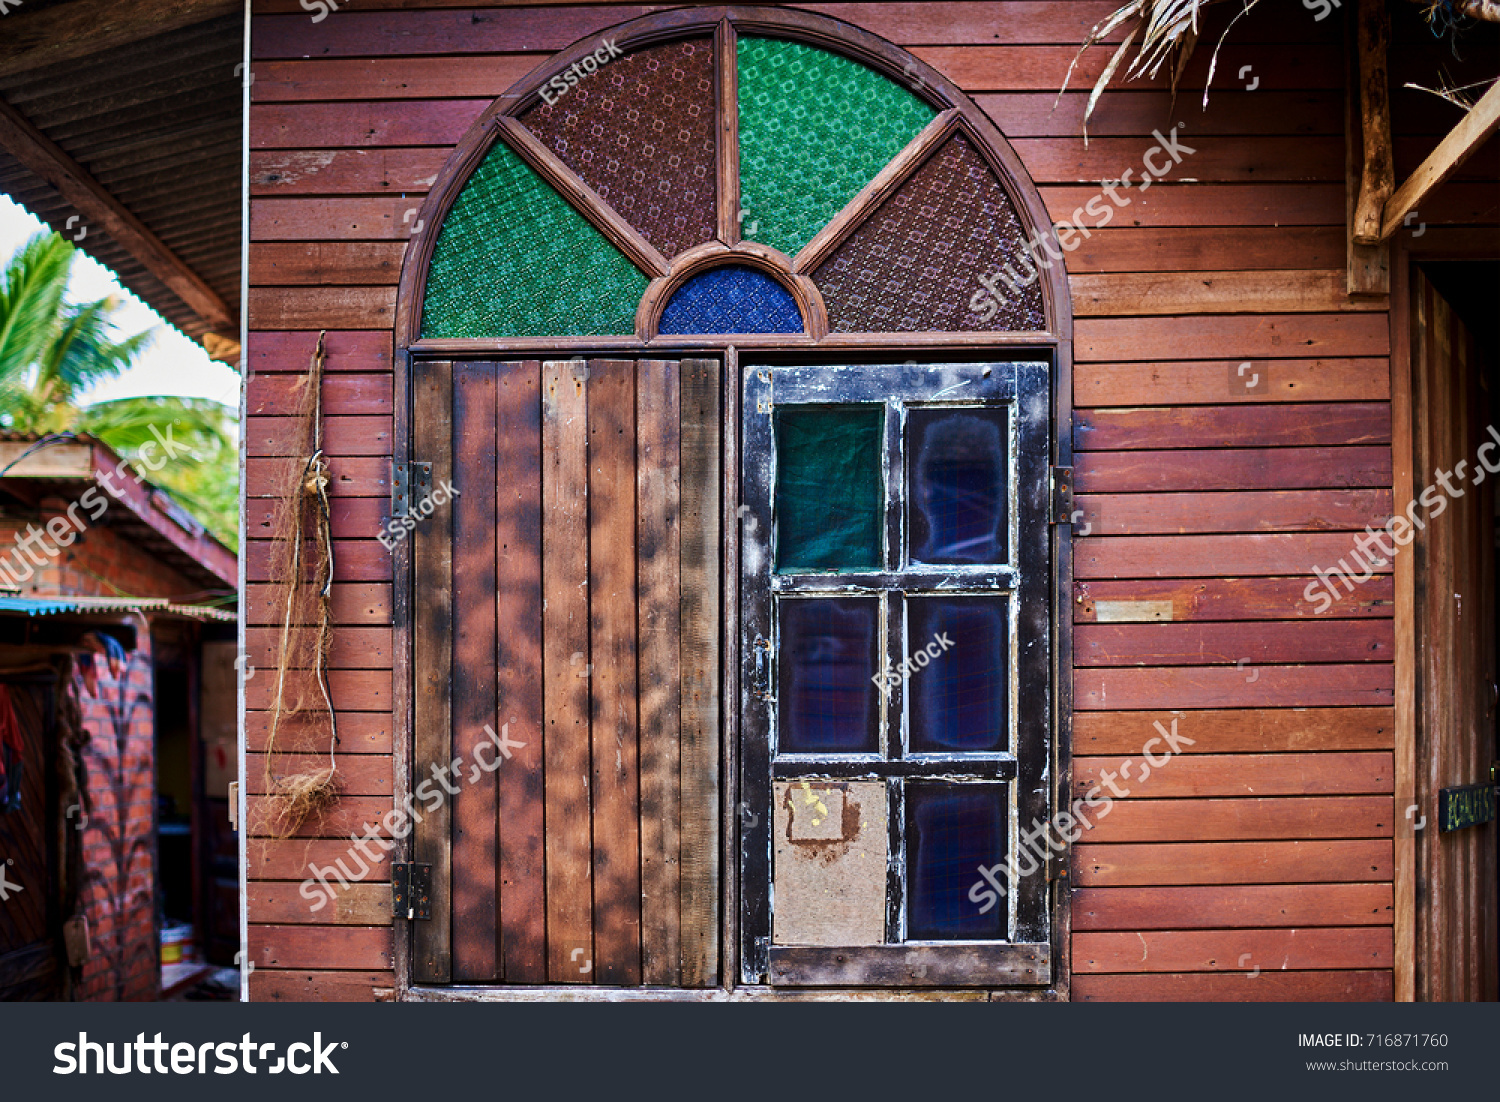 Old wooden window with color stained glass. Wooden window shutters pattern  on brown wall. Naked worn wooden and plain painted shutters.